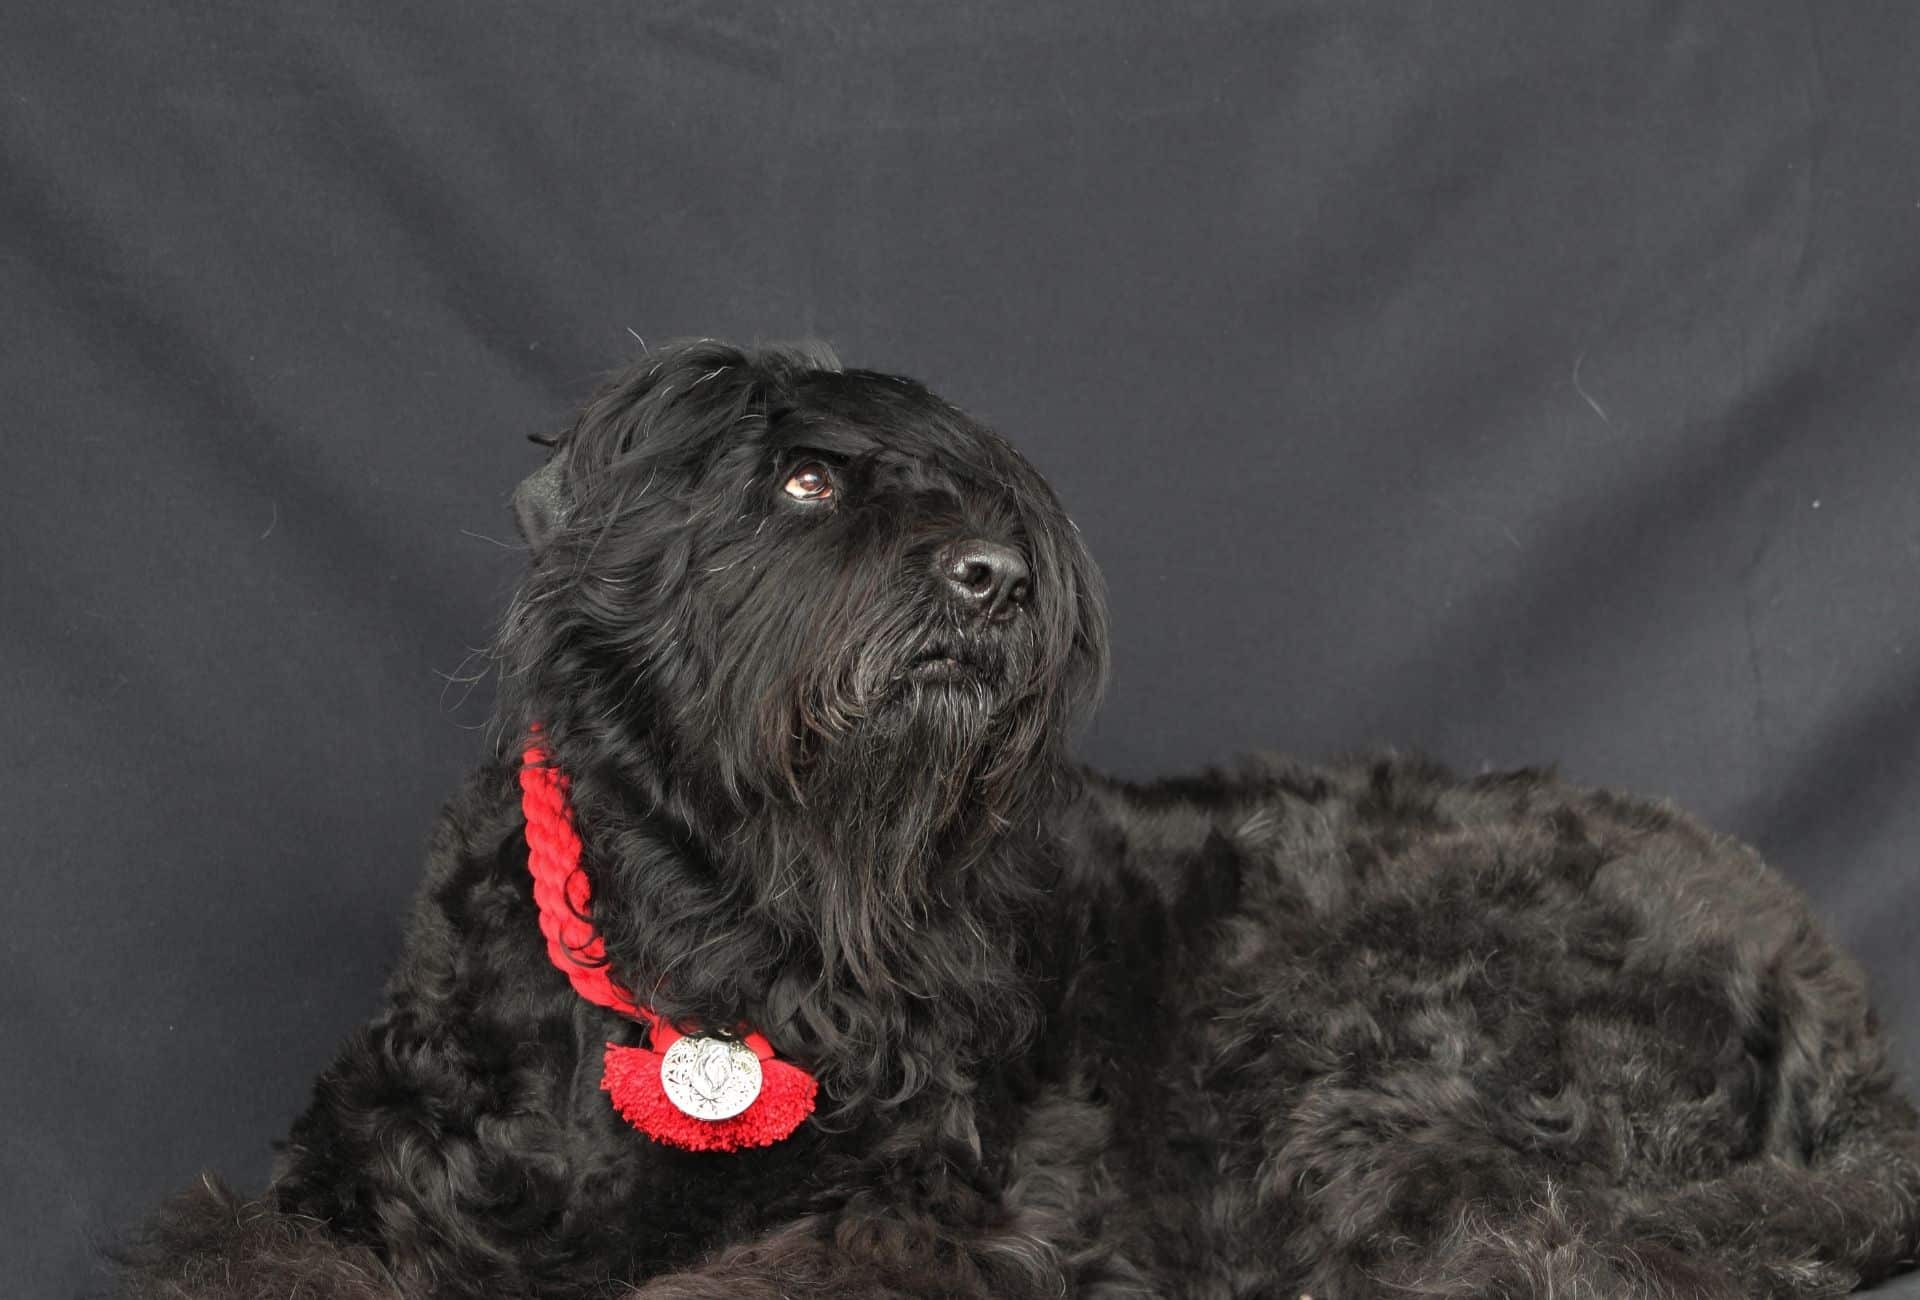 Black Russian Terrier with a medal around the neck.